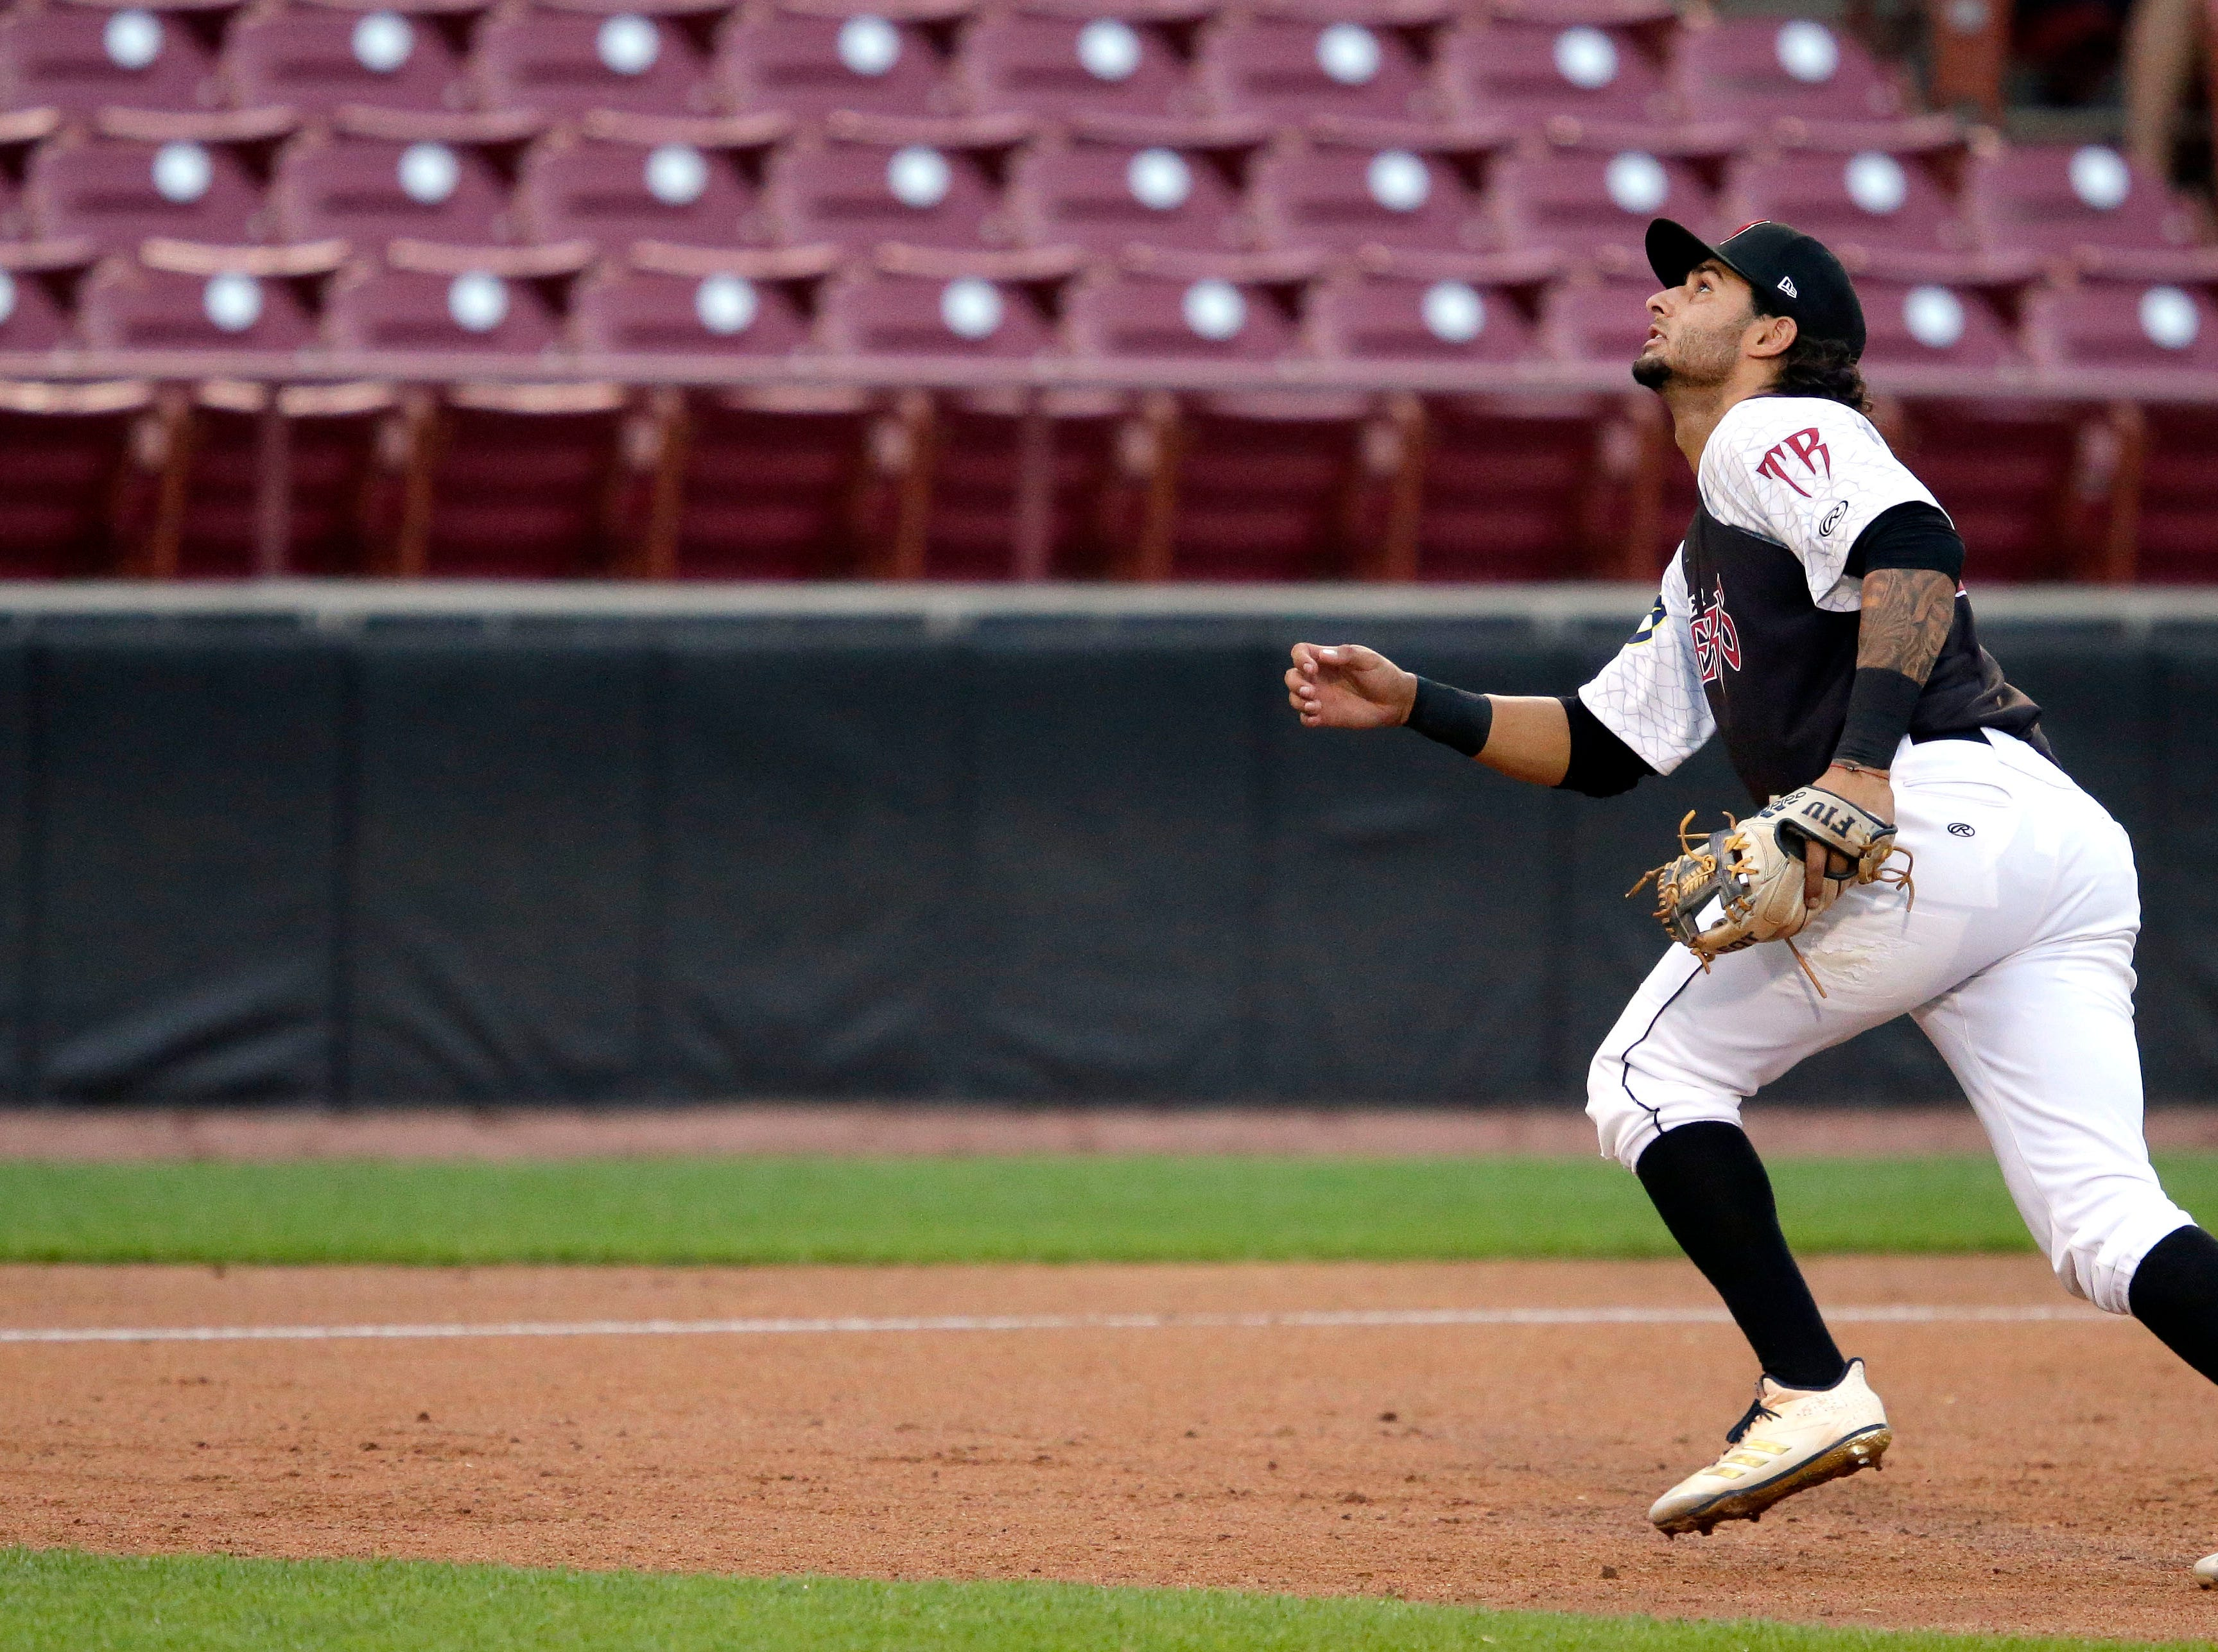 Eddie Silva of the Wisconsin Timber Rattlers plays against the Burlington Bees Thursday, August 2, 2018, at Neuroscience Group Field at Fox Cities Stadium in Grand Chute, Wis.Ron Page/USA TODAY NETWORK-Wisconsin